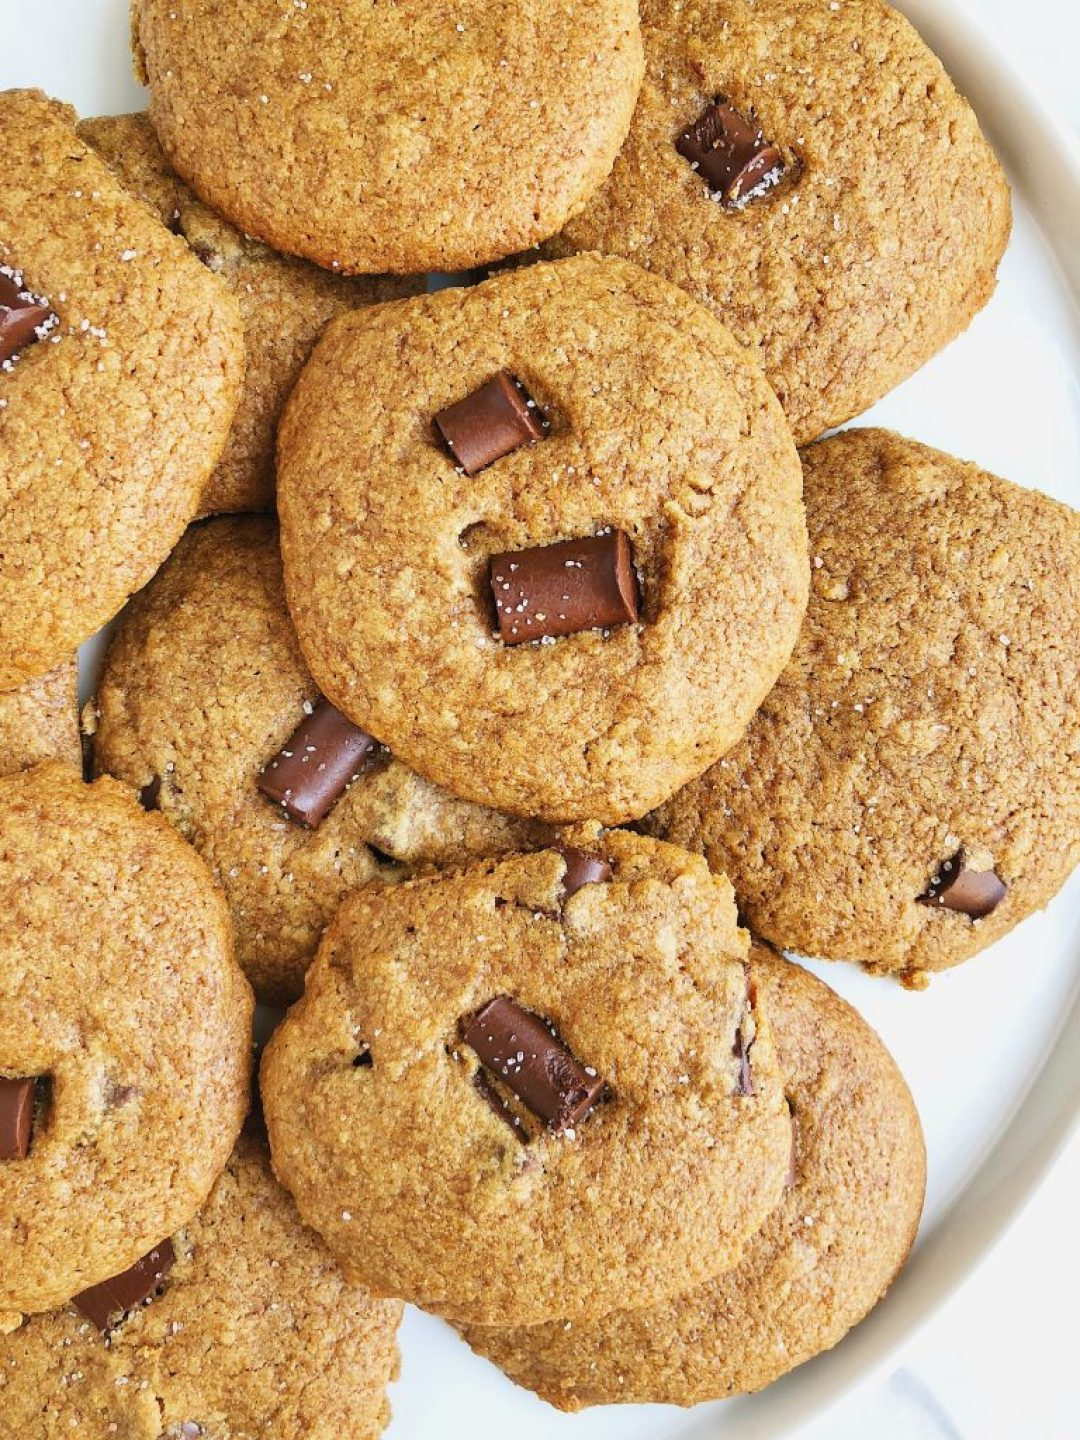 6-ingredient Classic Chocolate Chip Cookies made with simple and delicious ingredients for a tasty cookie treat!